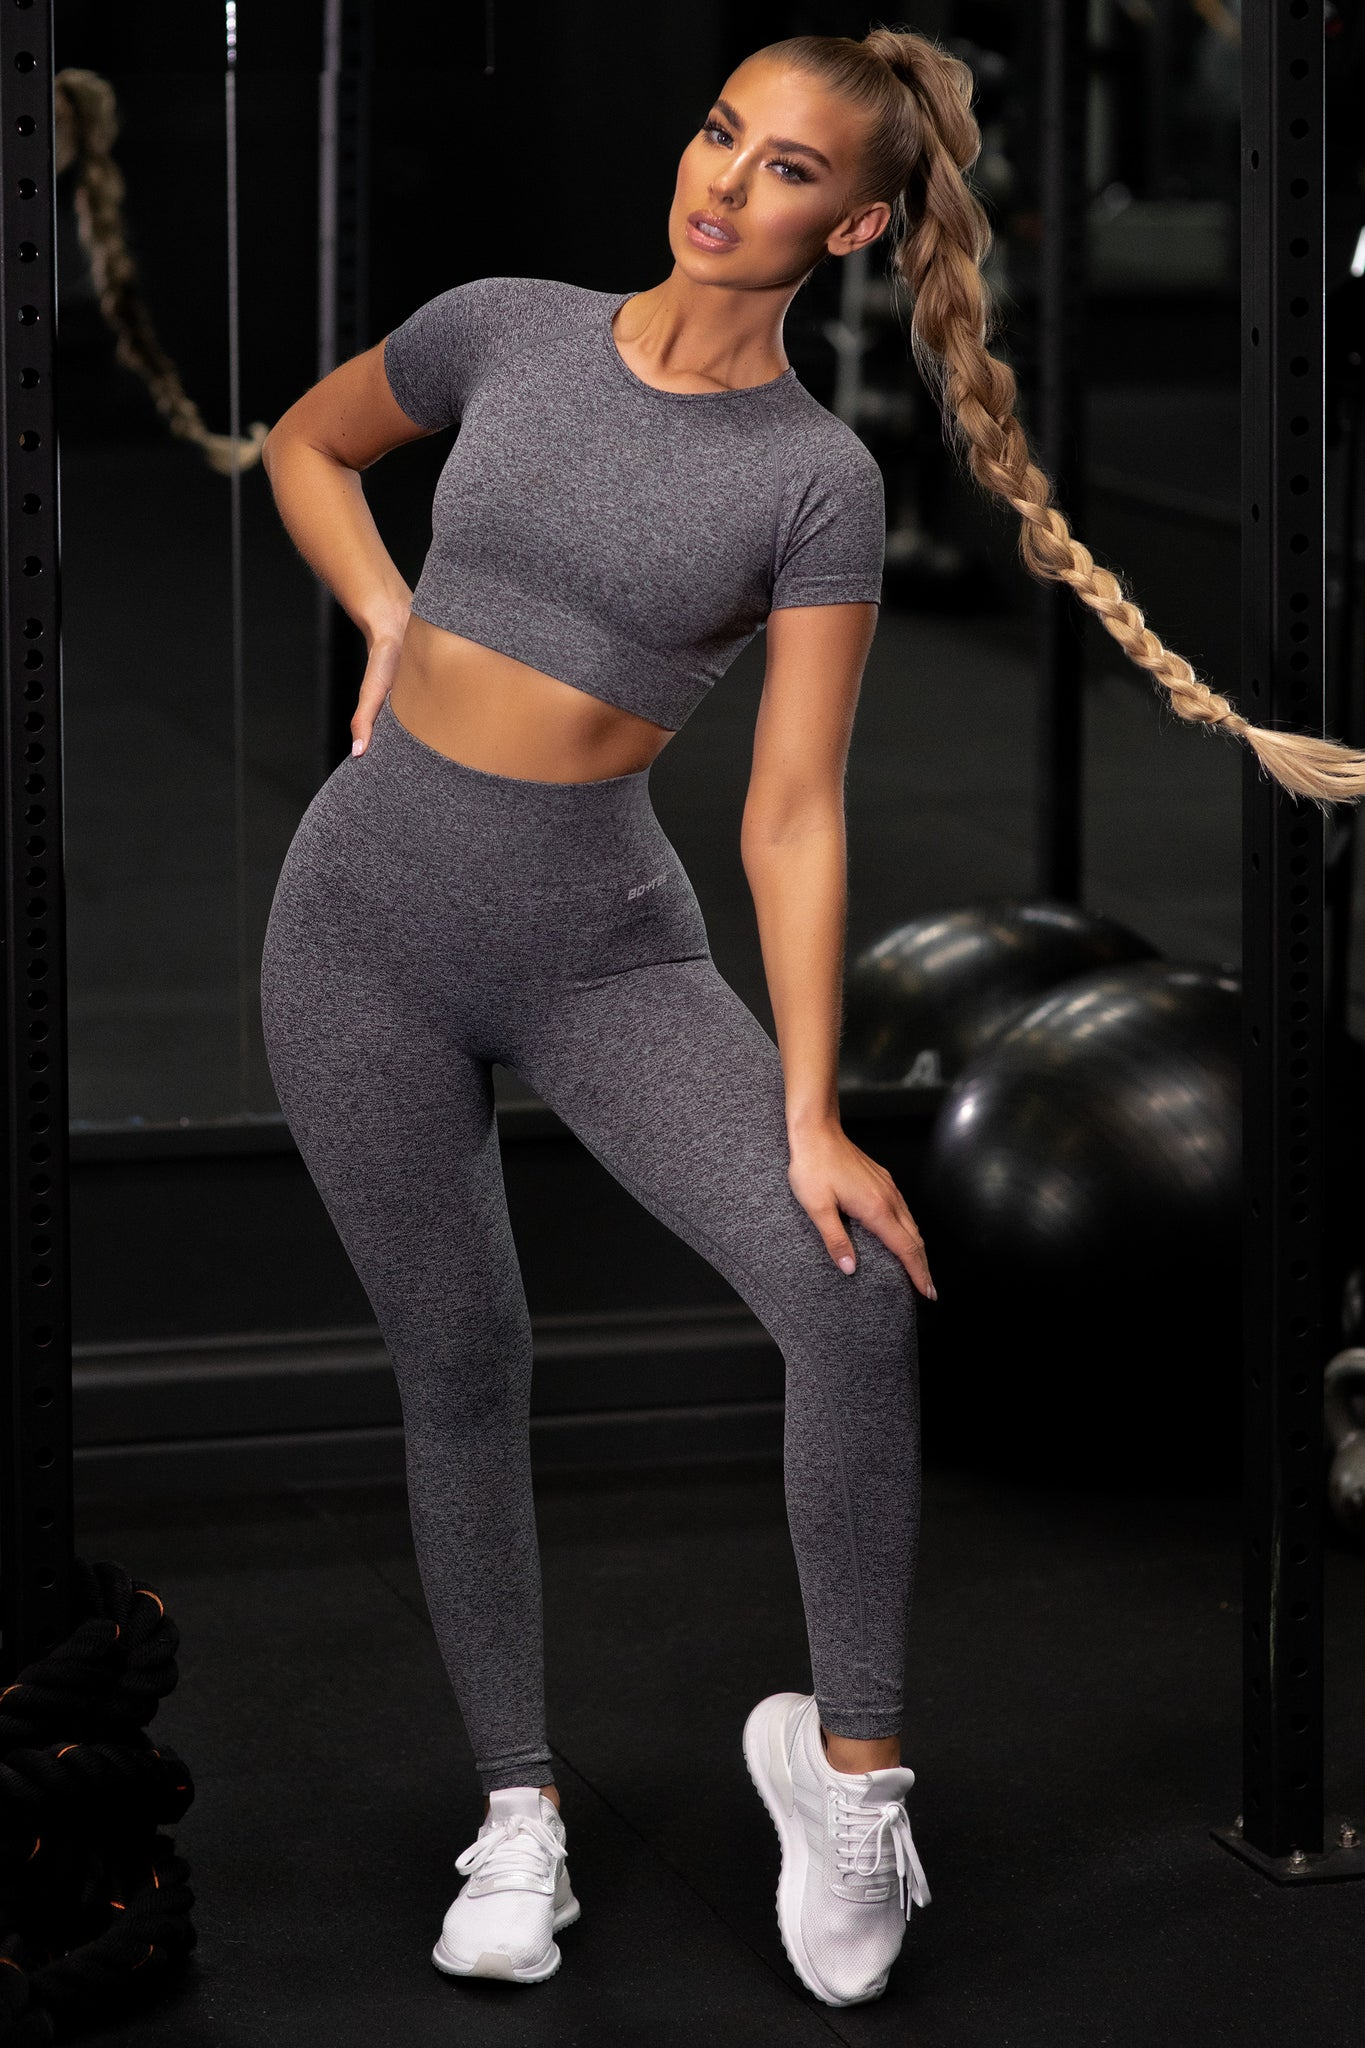 Plain black marl petite seamless high waisted full length gym leggings. Image 1 of 6.